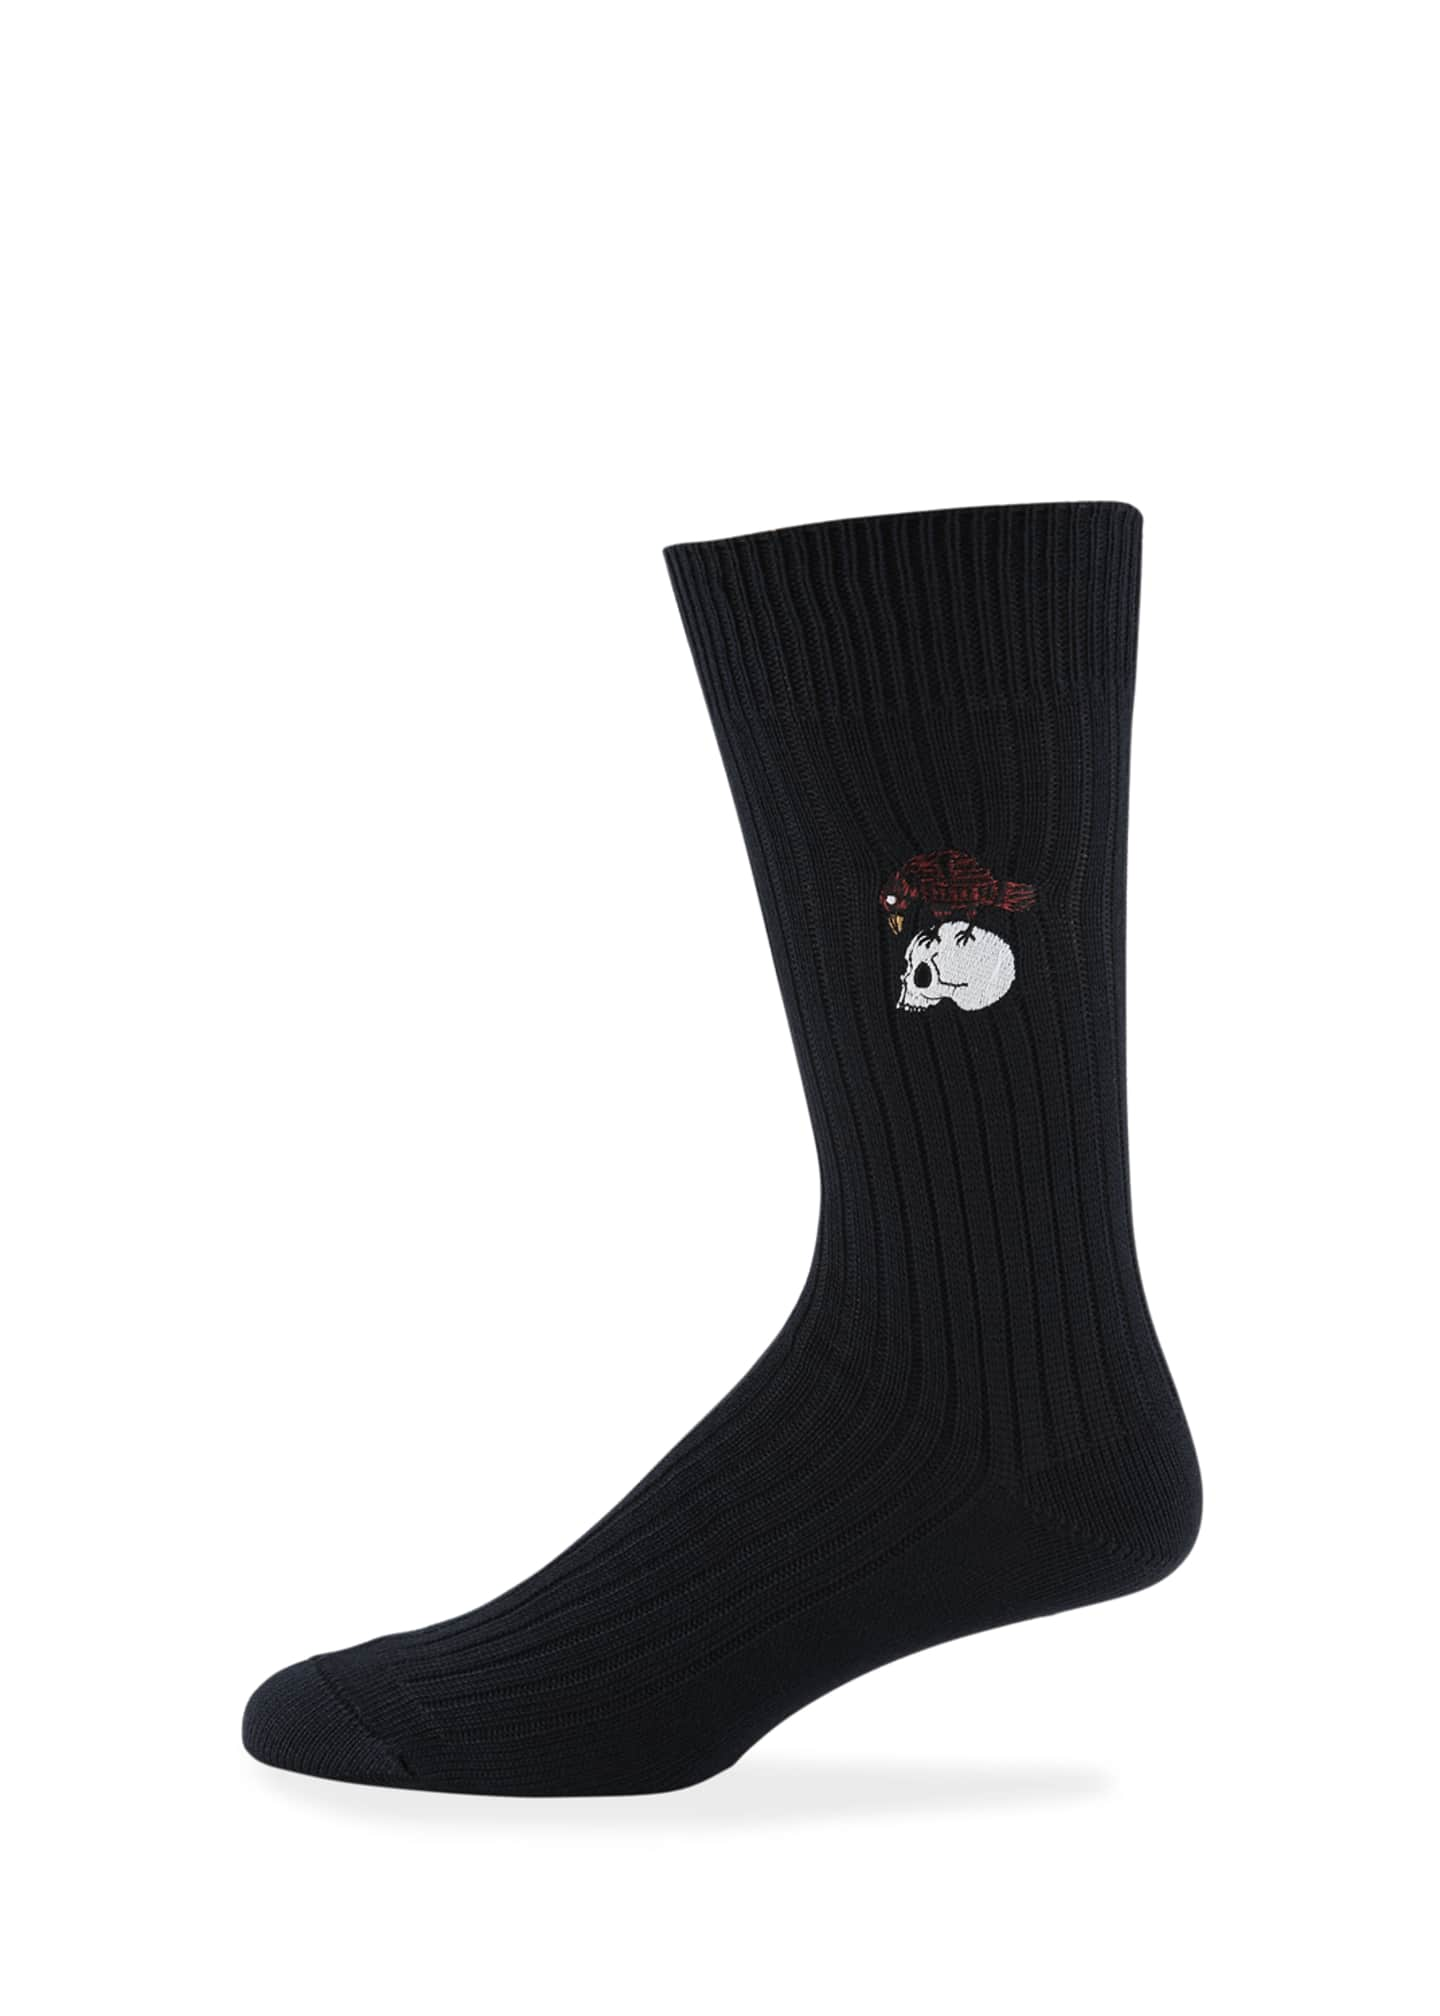 Alexander McQueen Men's Chunky Skull Cotton Socks